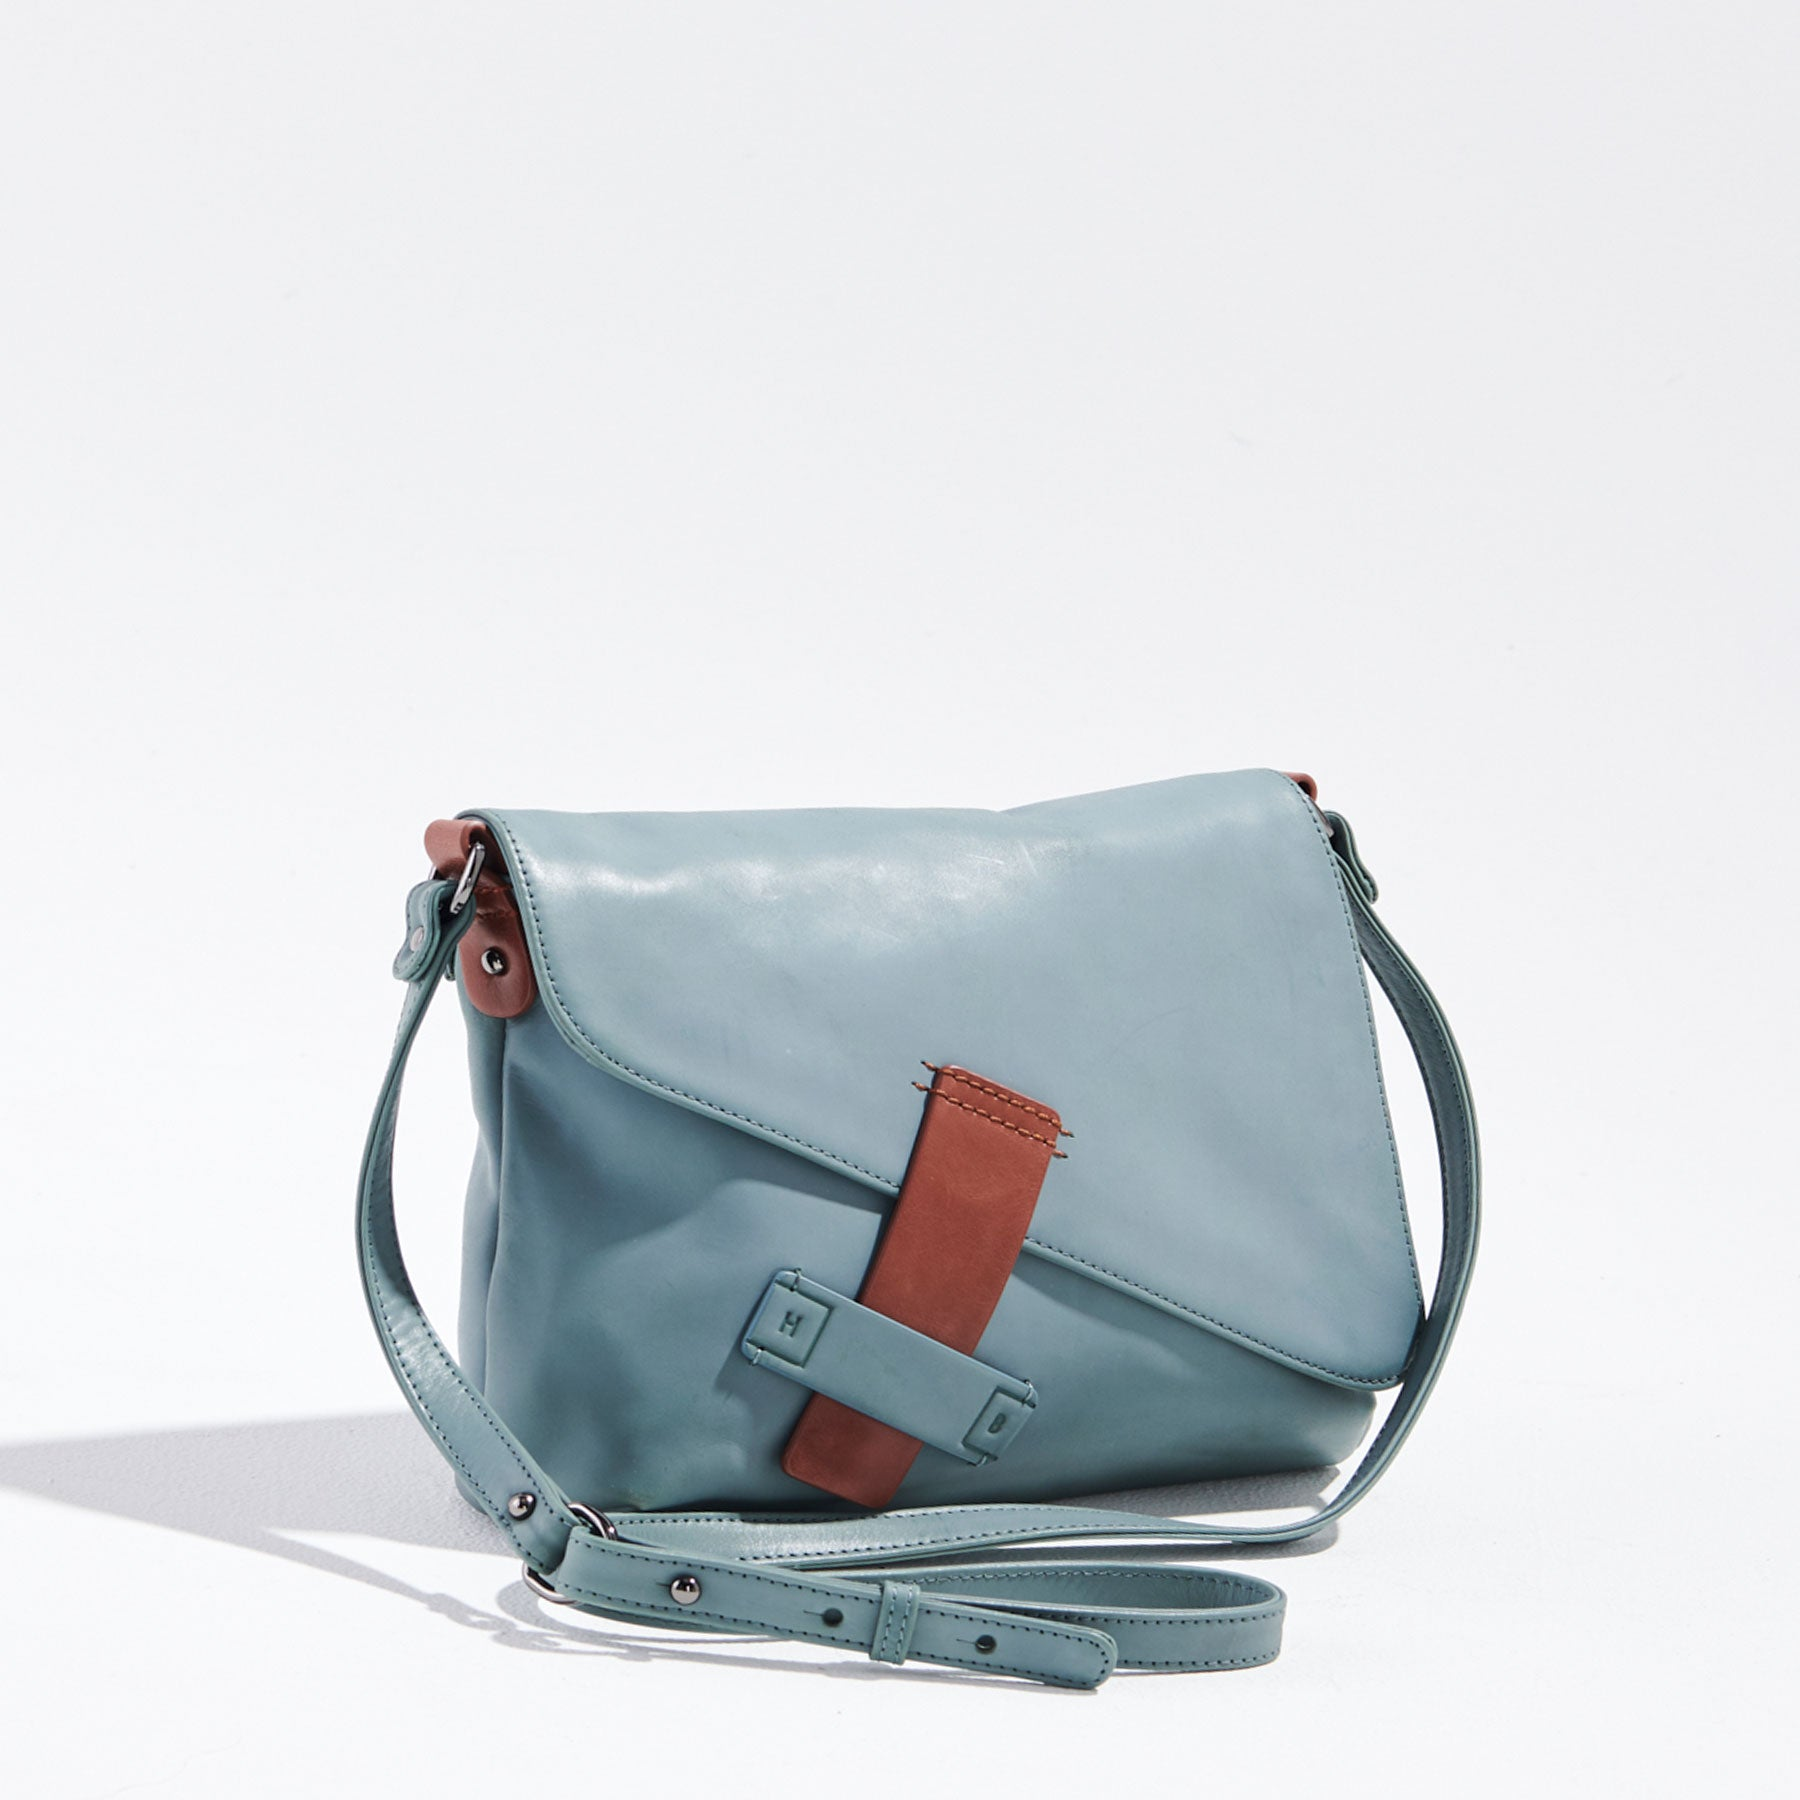 Dreamwalker Bag - Ocean / Dark Tan